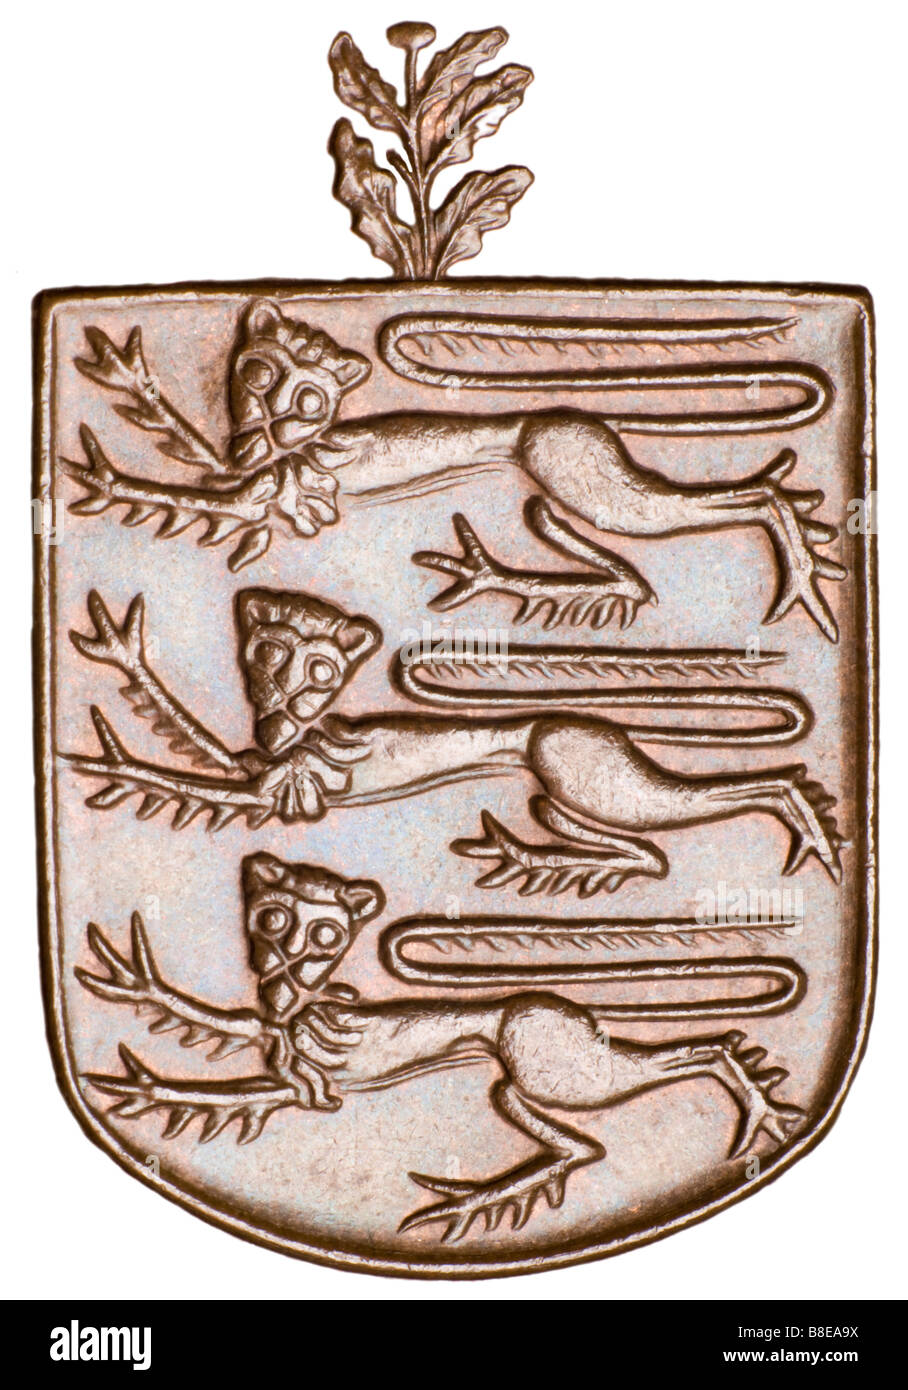 Guernsey Coat of Arms, from 8 Doubles coin of 1956 - Stock Image